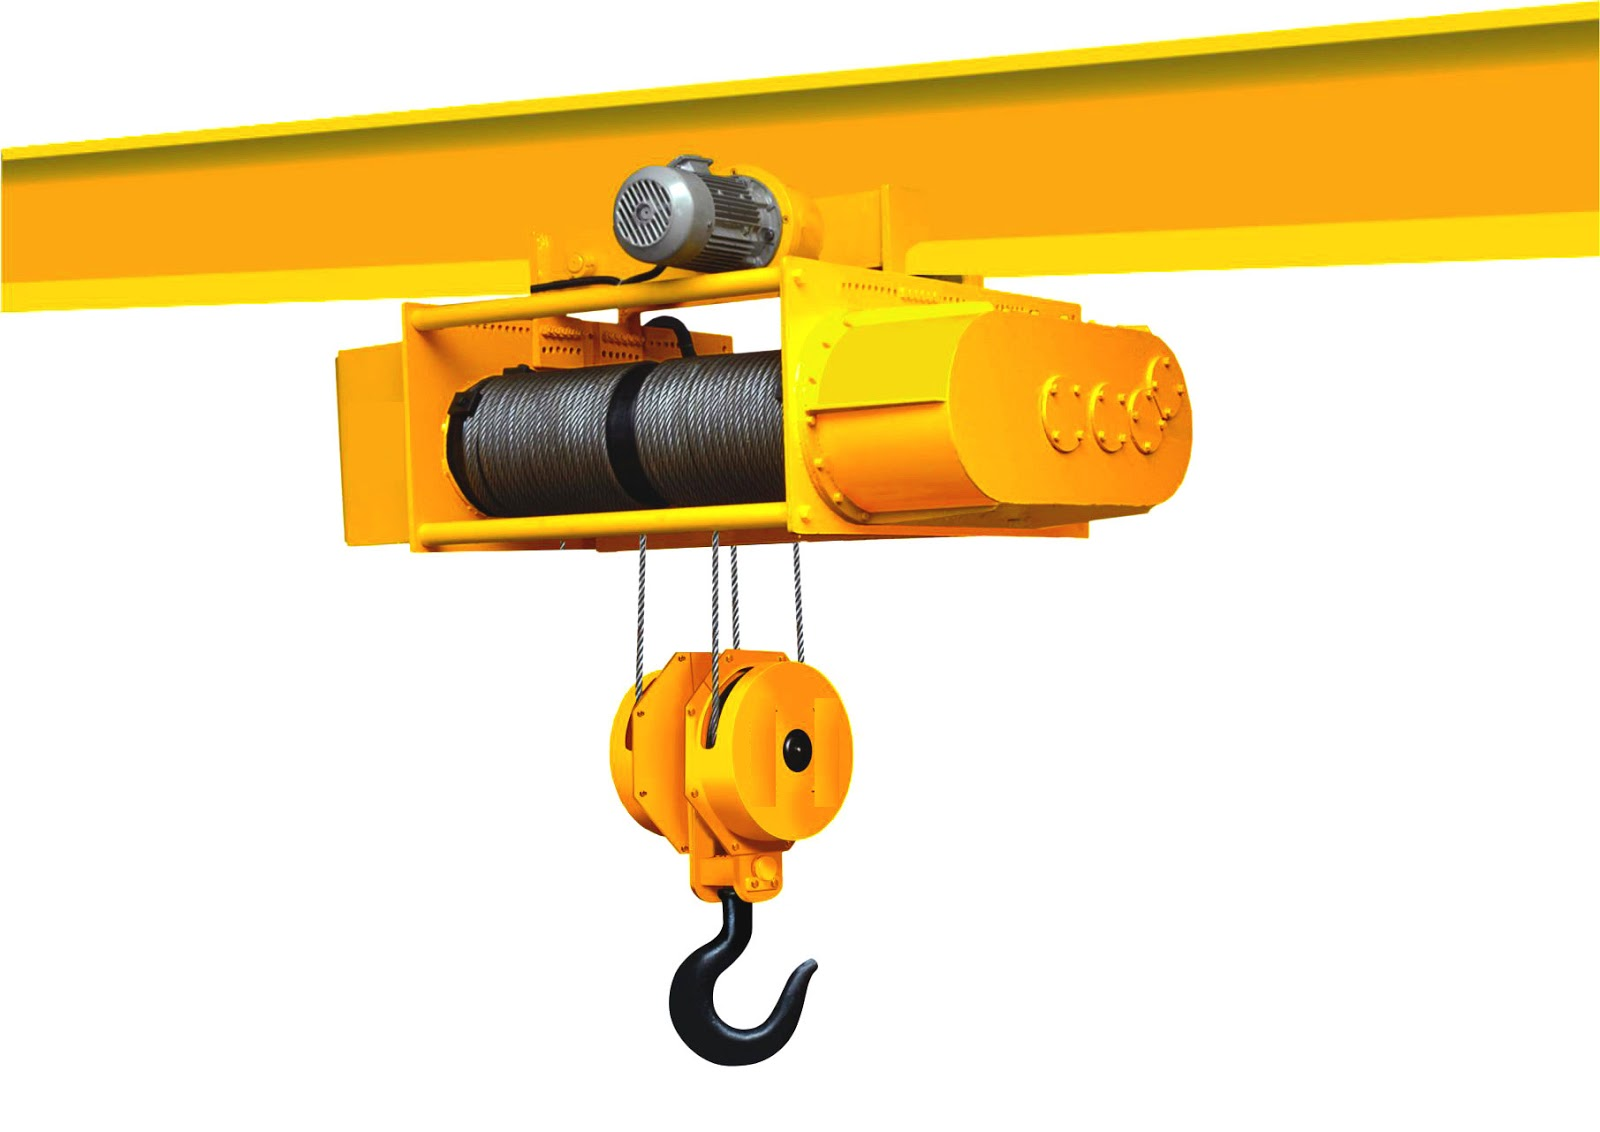 K S G Power Control System | Elevators Cranes Manufacturers in Ludhiana